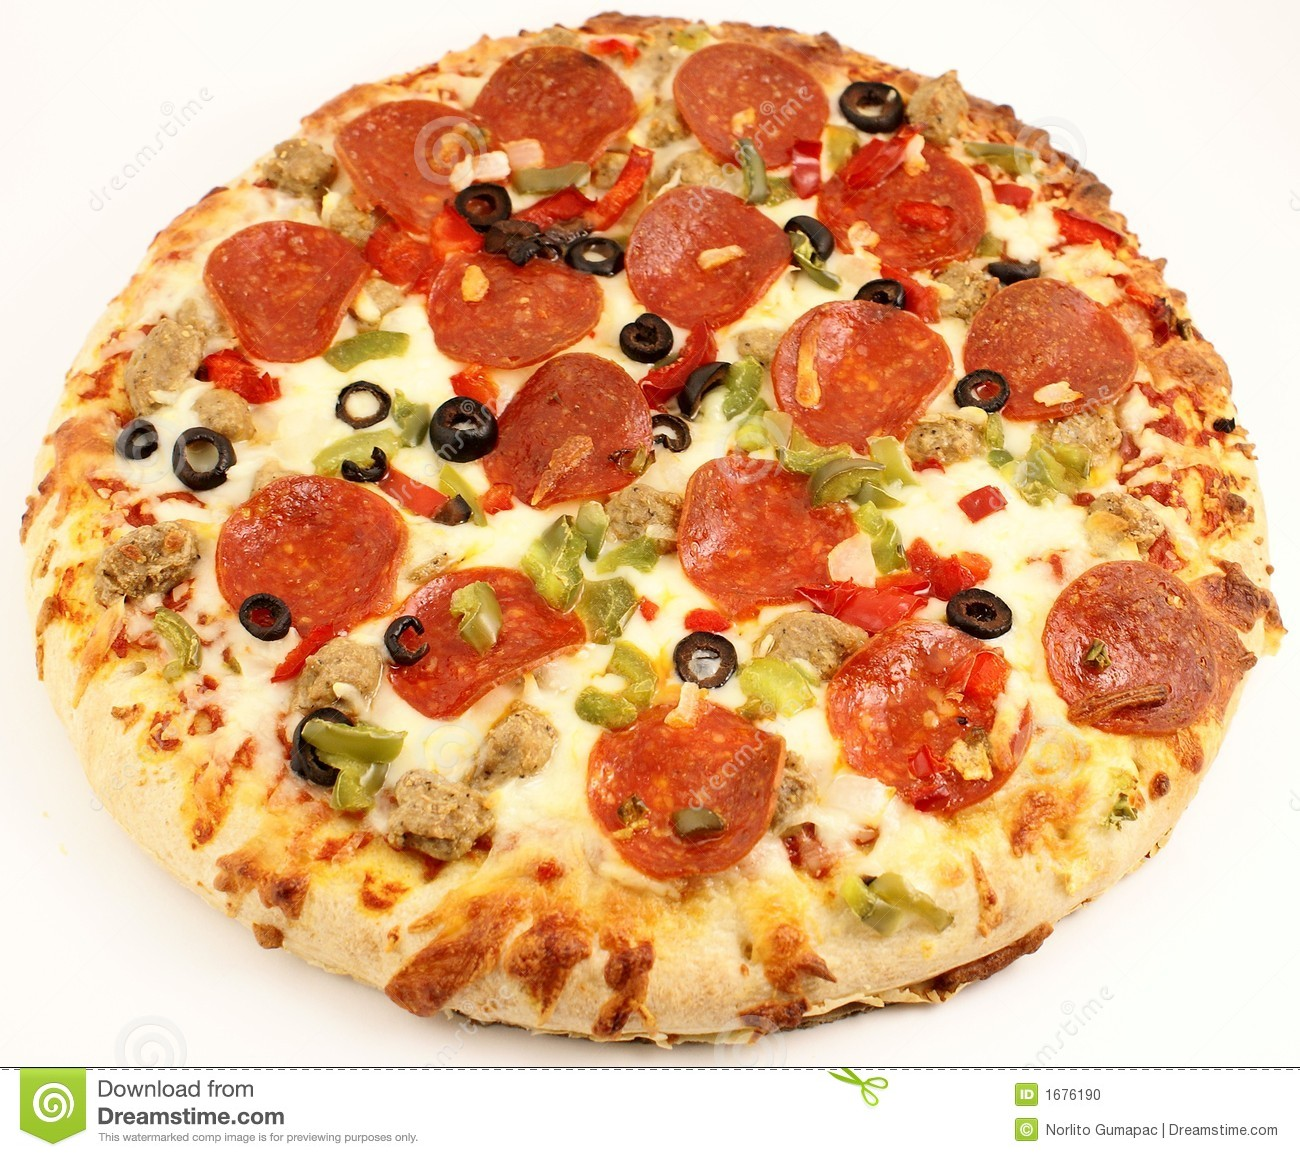 Whole Deluxe Pizza Stock Photo.